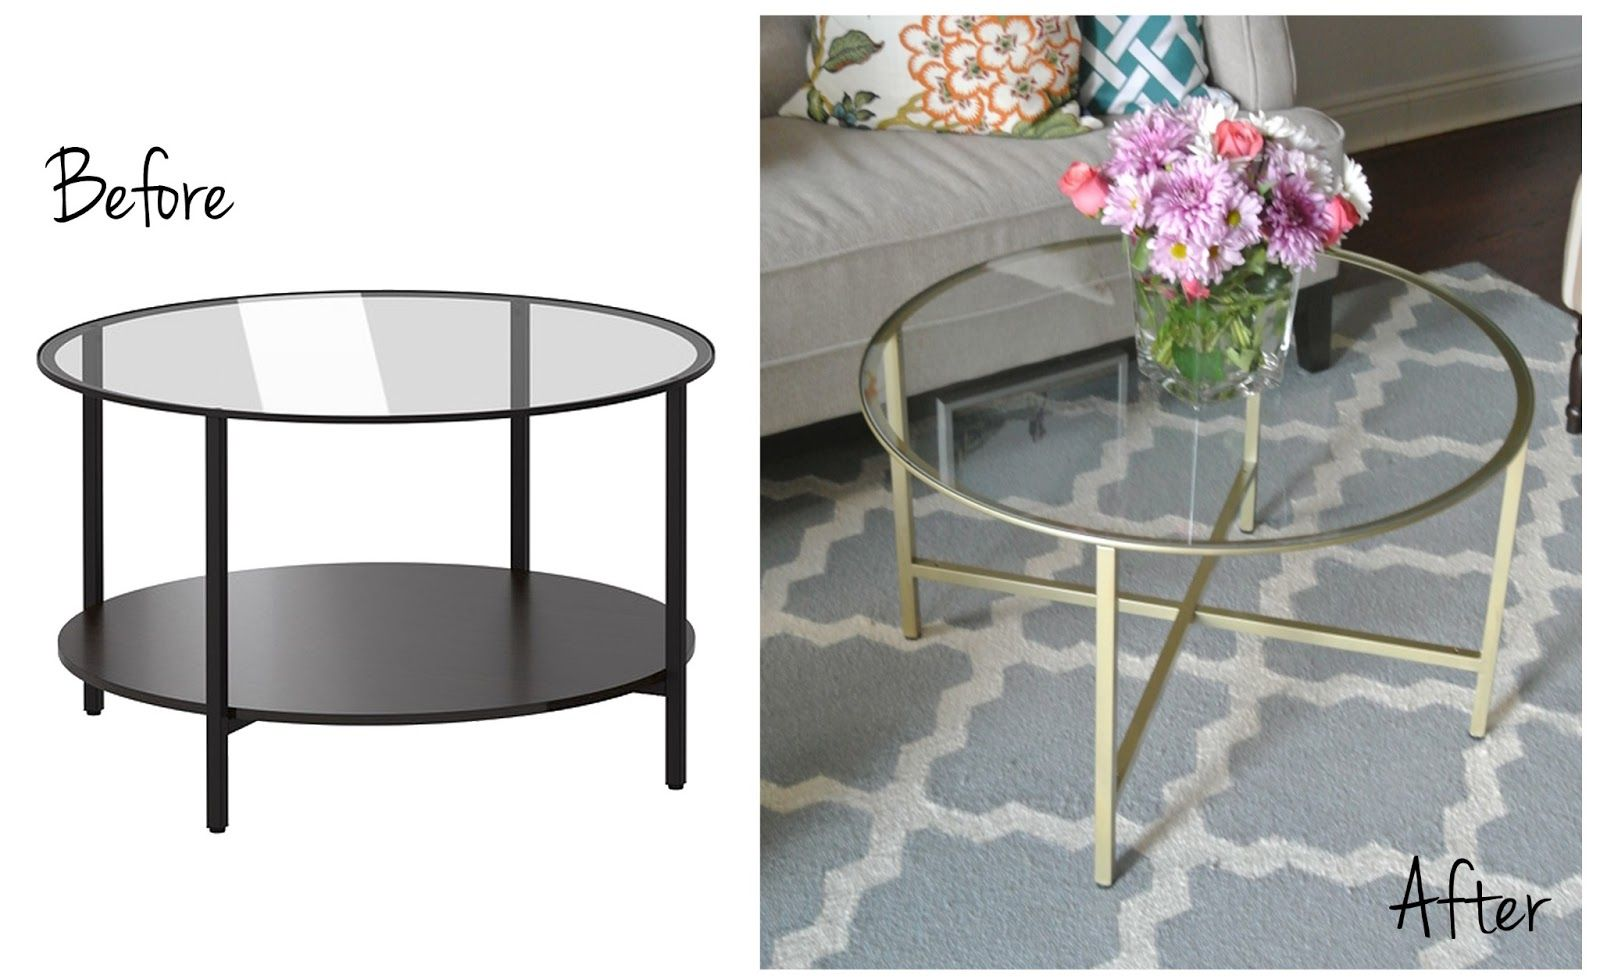 Vittsjö Couchtisch Hack A Blog About Home Decor And Diy Inspiration | Ikea Coffee Table, Modern Farmhouse Coffee Table, Ikea Diy